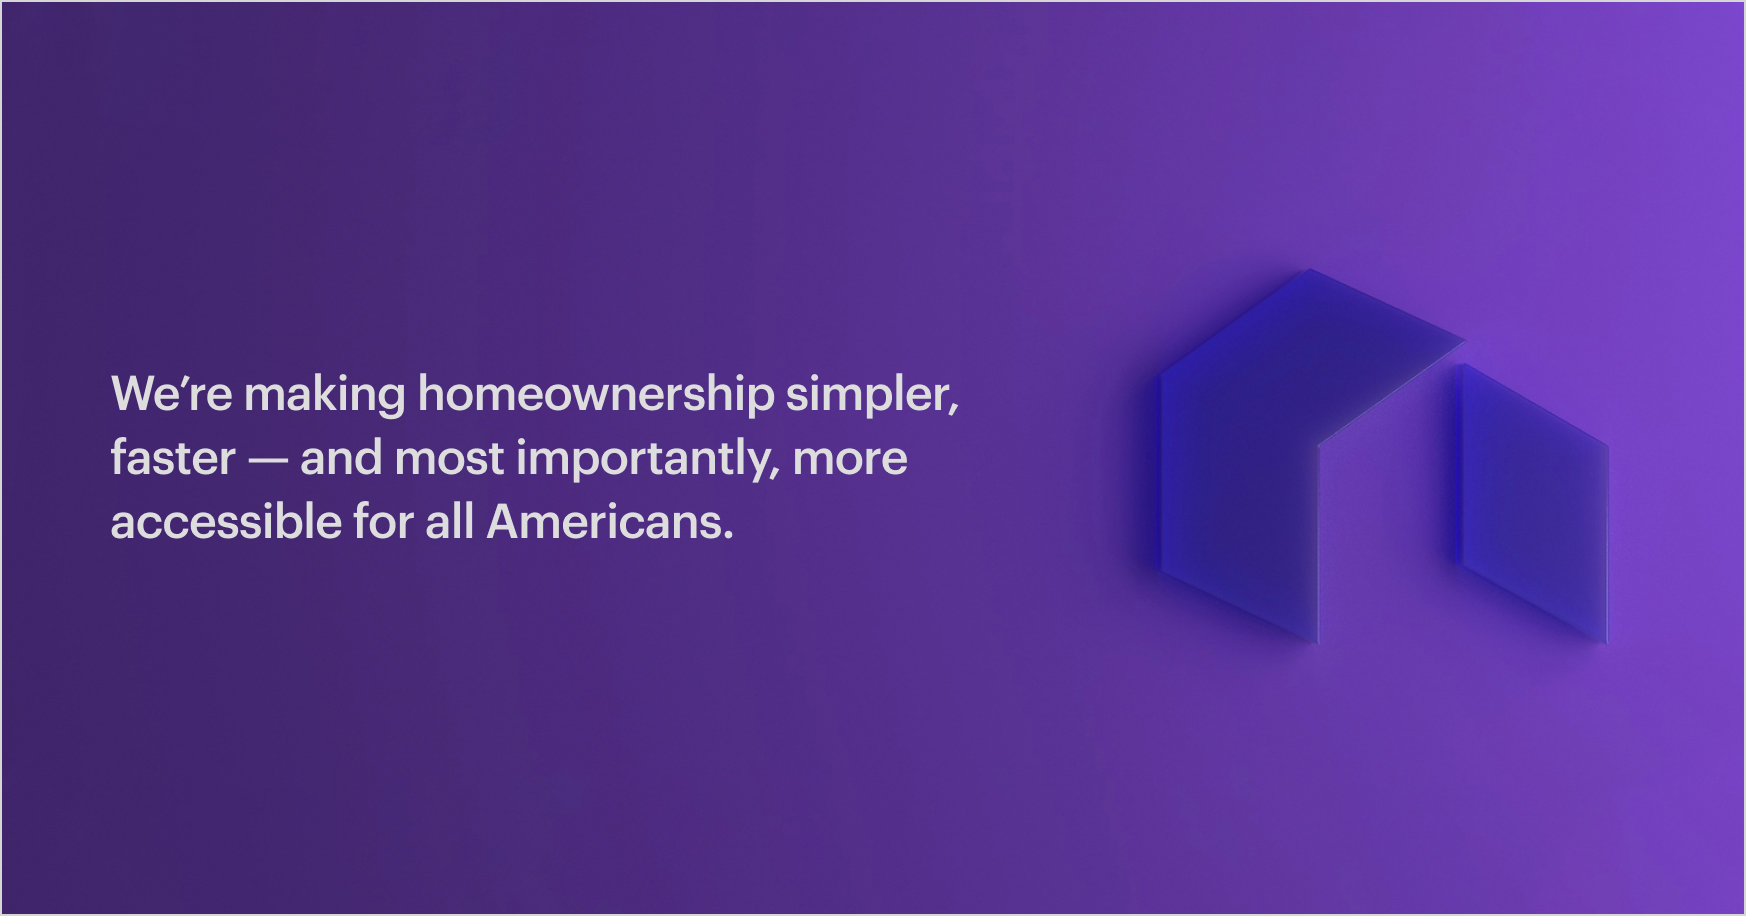 Purple Graphic and Better Mortgage Logo: We're Making Homeownership Simpler, Faster -- and Most Importantly, More Accessible for All Americans.